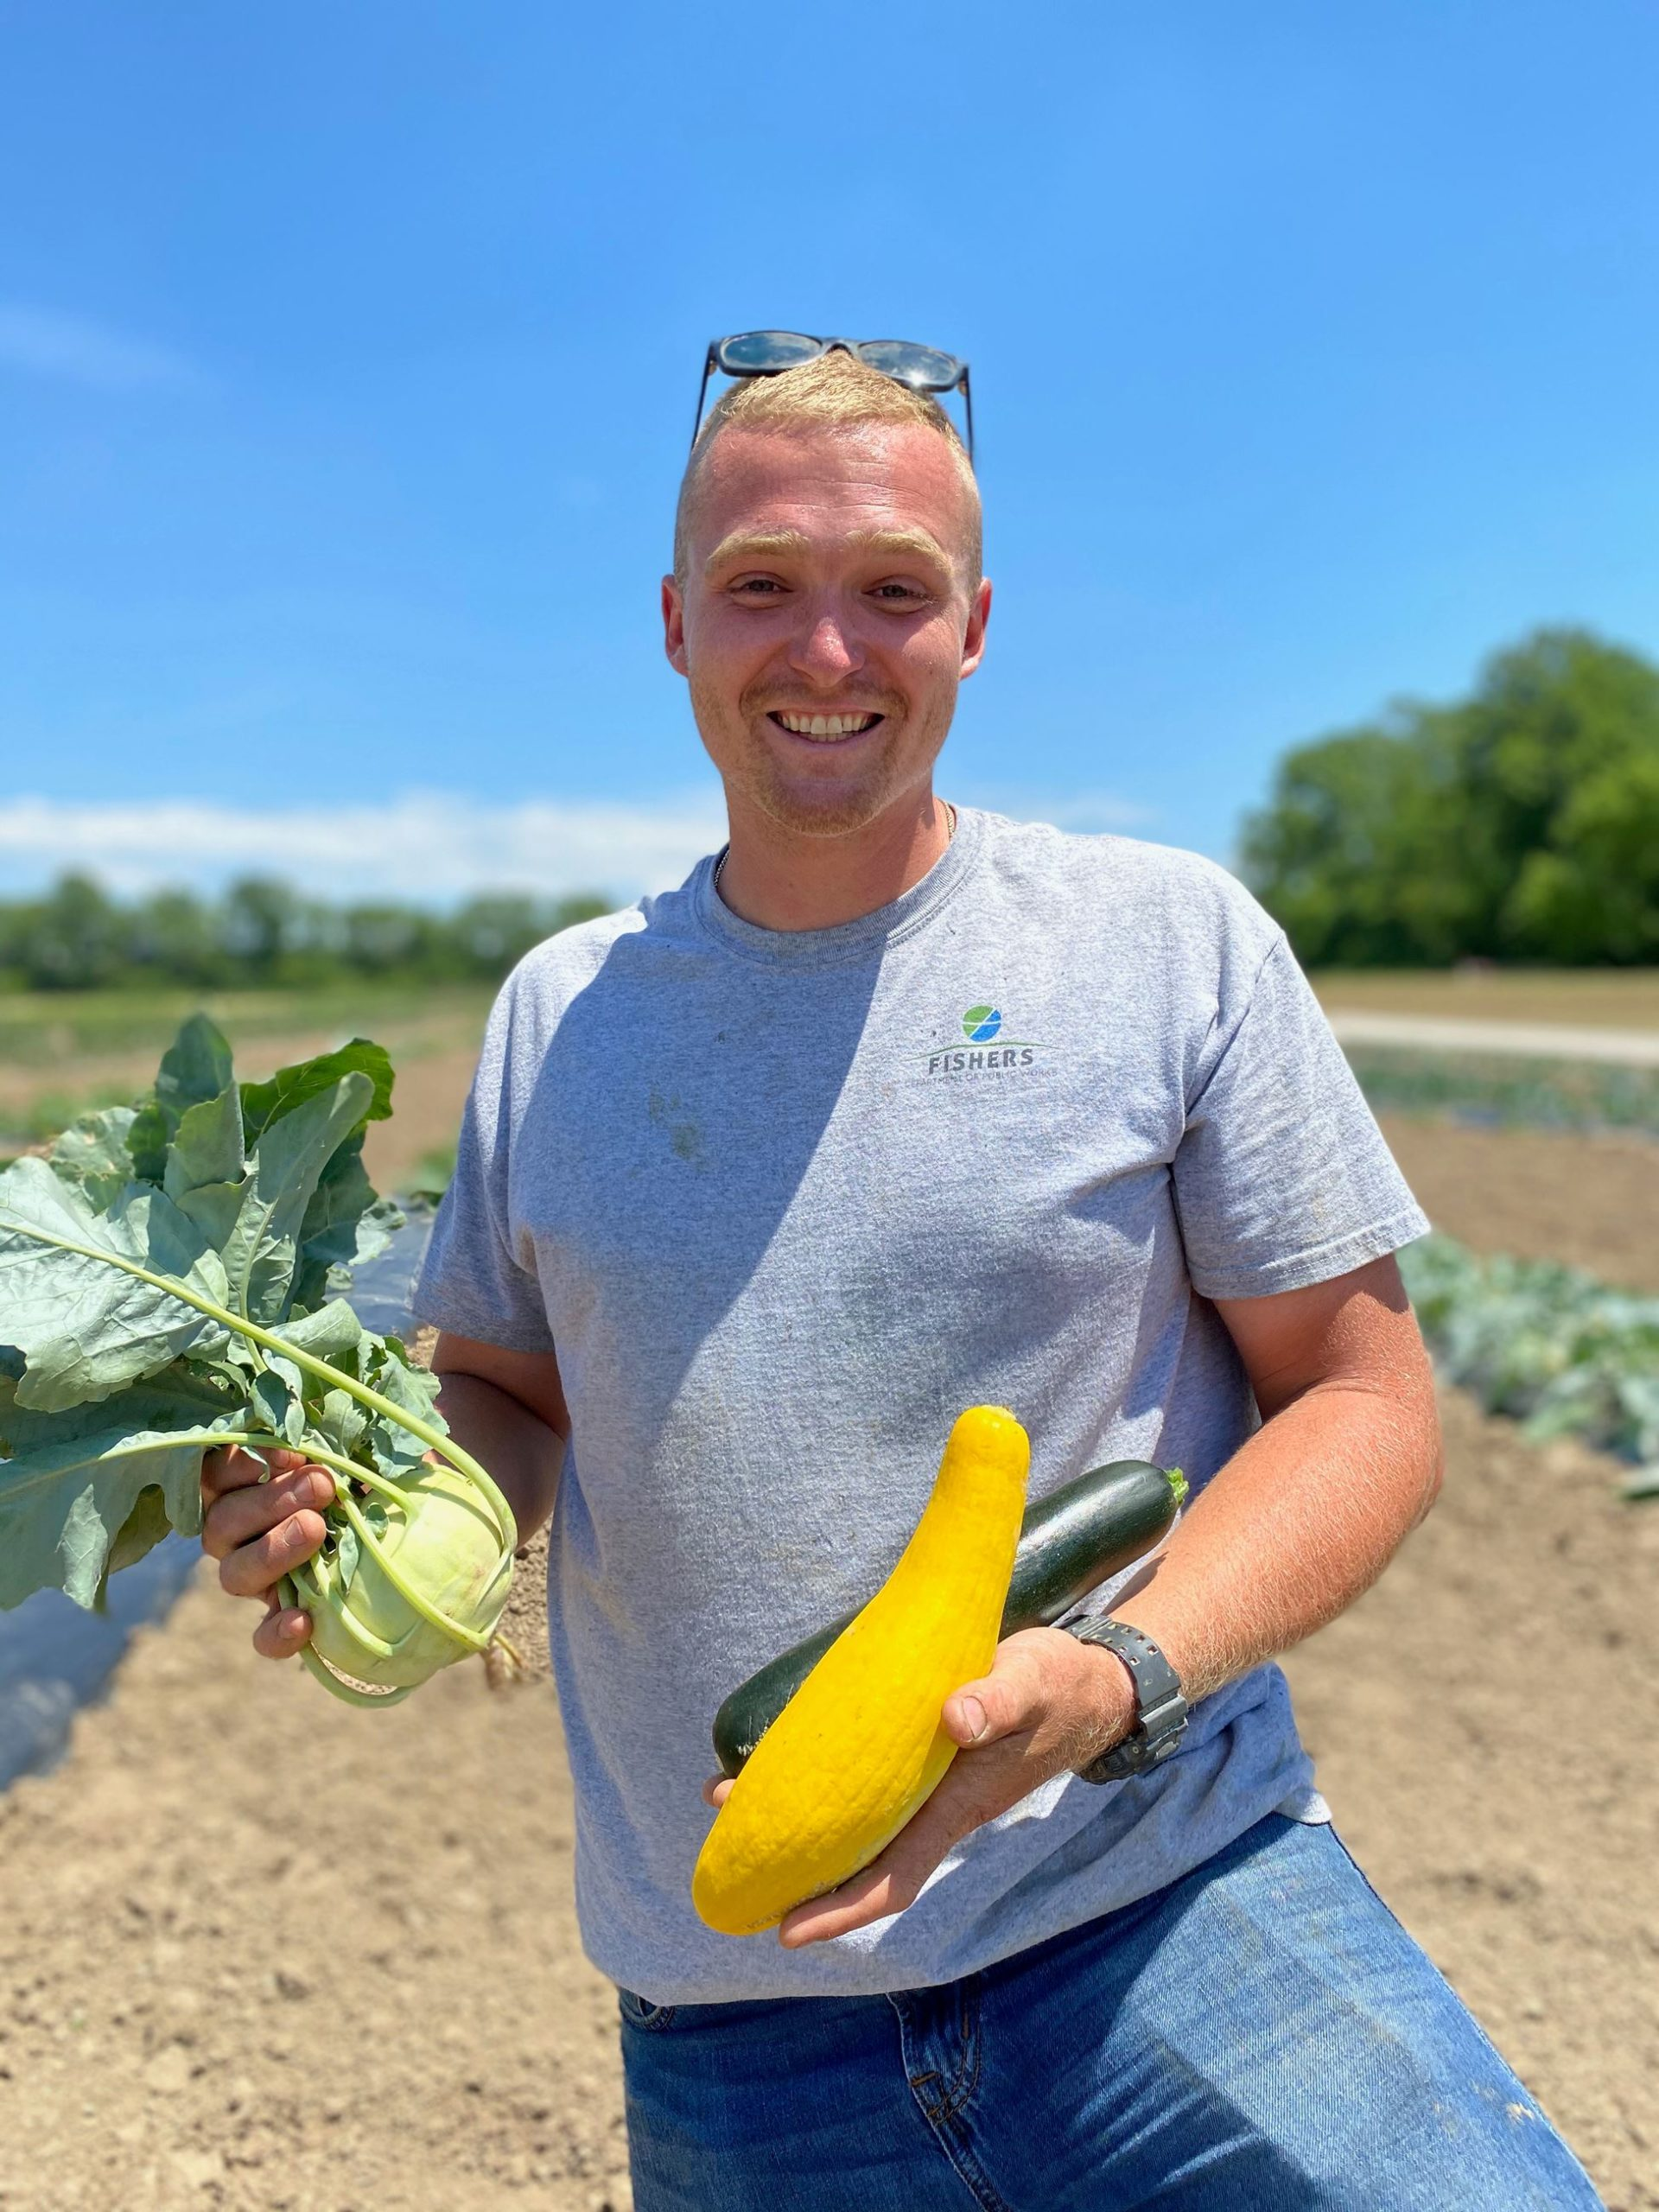 a man smiling on a farm and holding produce